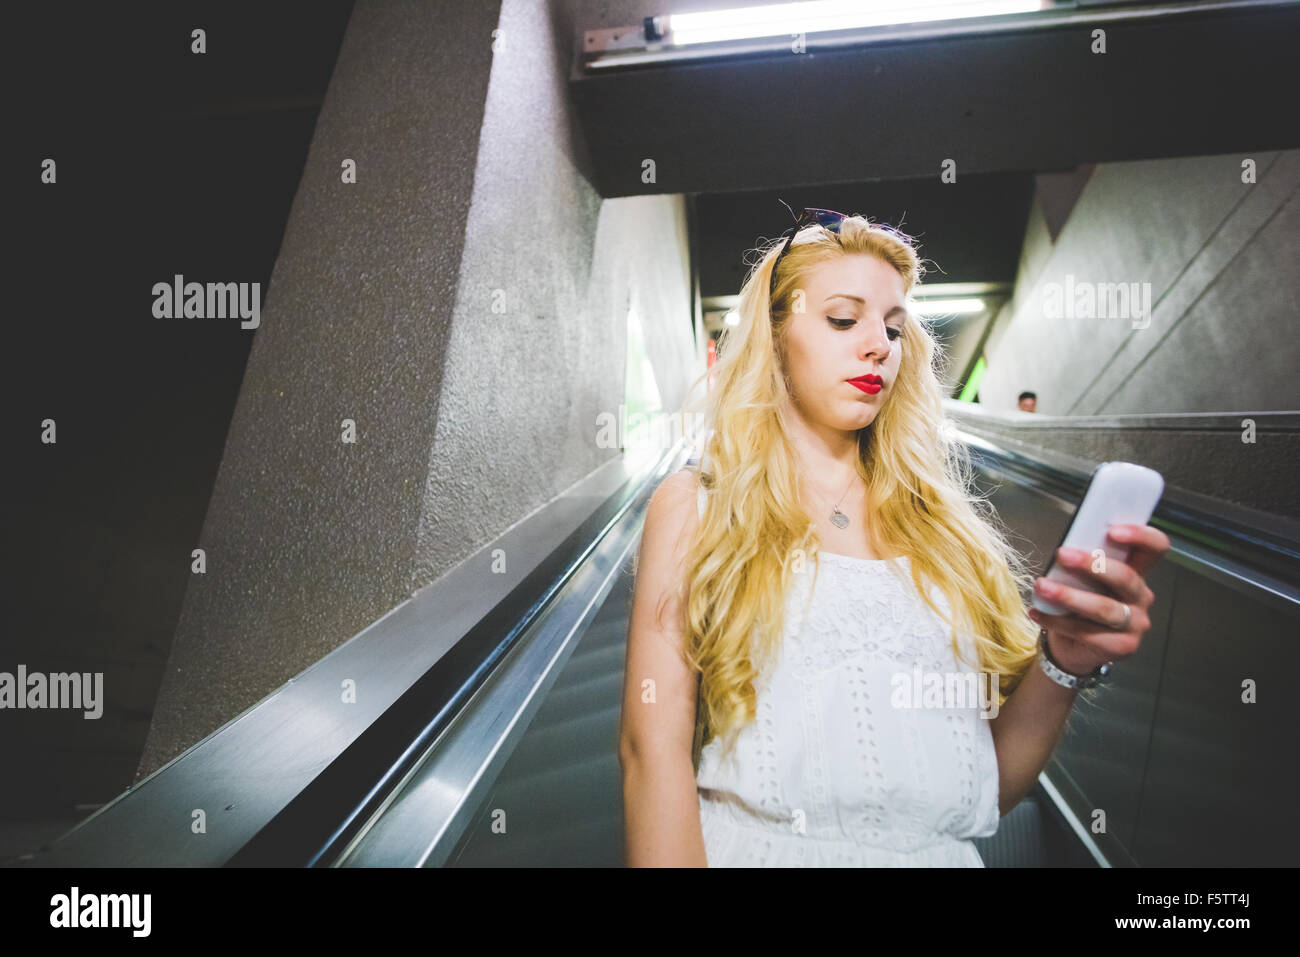 Half length of young handsome caucasian blonde straight hair woman on a escalator in the subway, holding a smartphone, - Stock Image